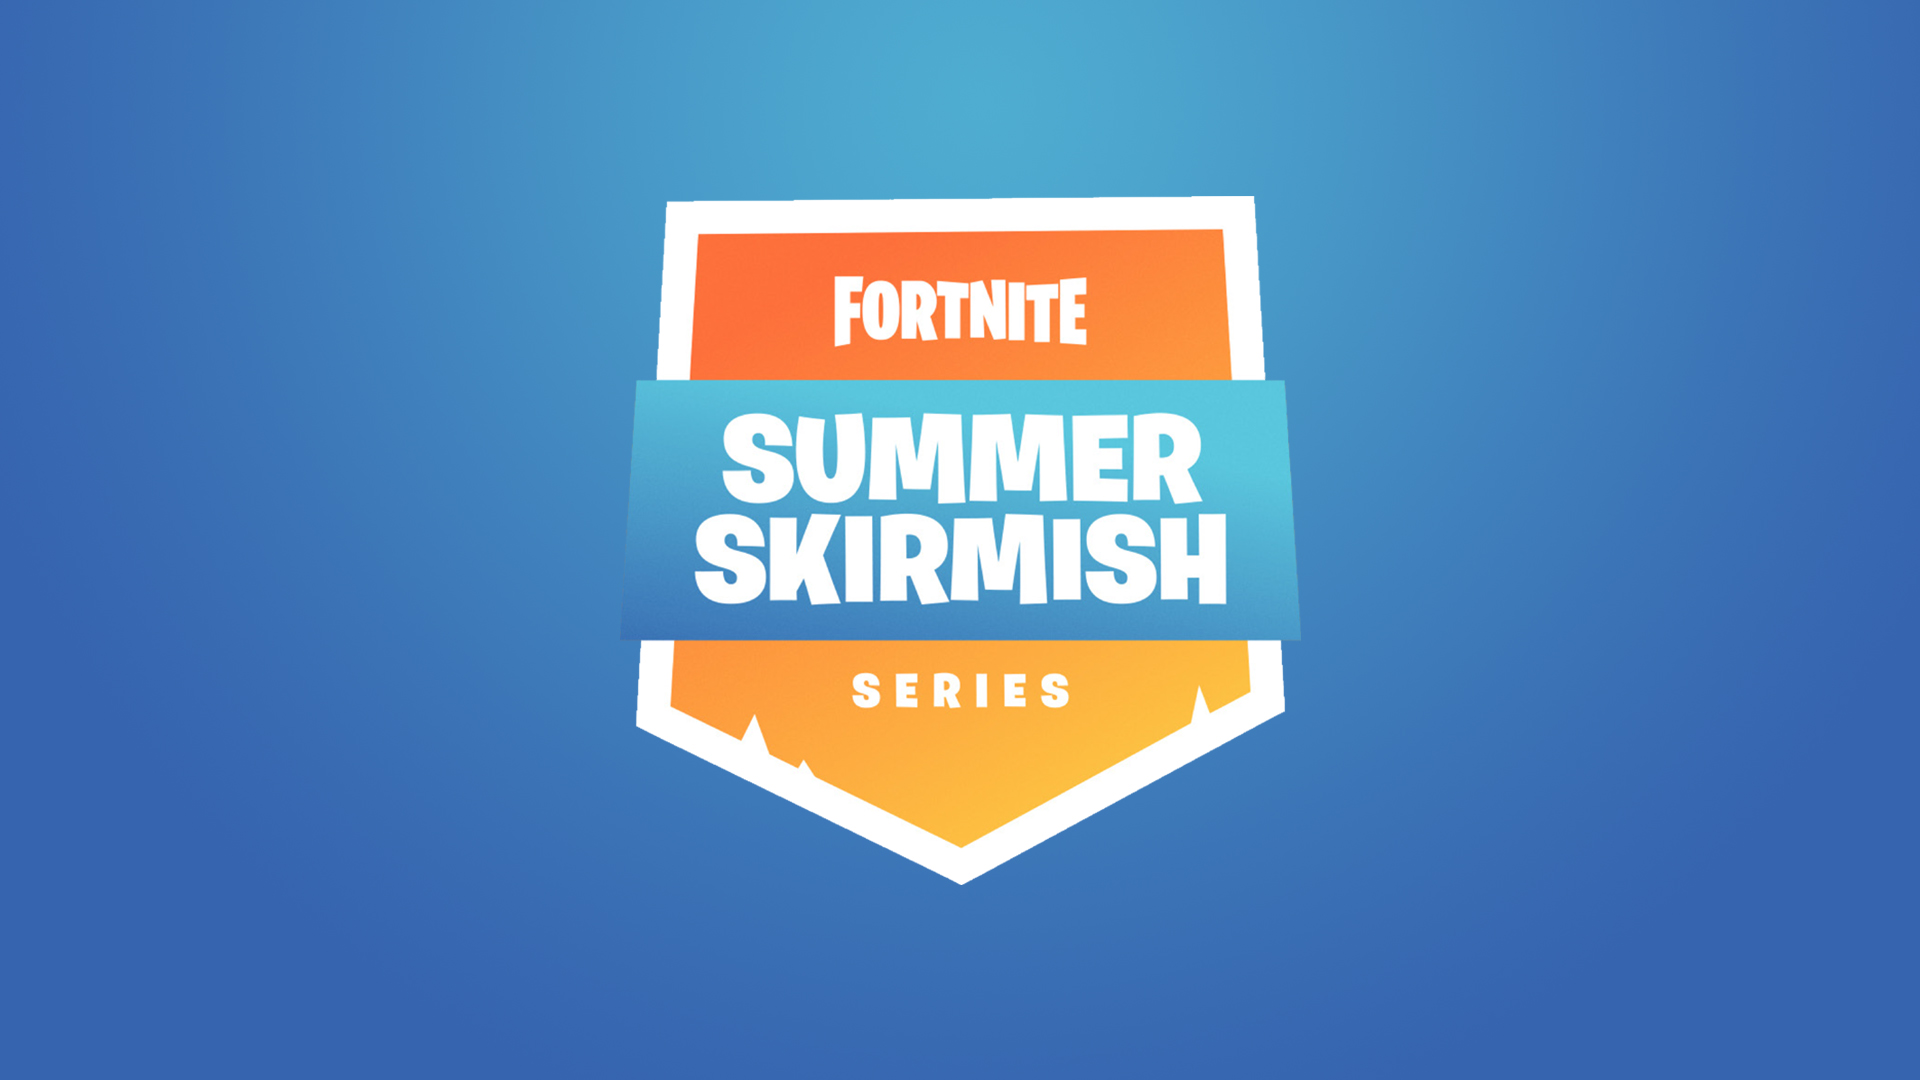 Fortnite%2Fblog%2FPax+West+2018%2FBR05_16-9_SummerSkirmish_Blue-1920x1080-1eeee2186cb787bf724555e83acc19678aa434ad.jpg